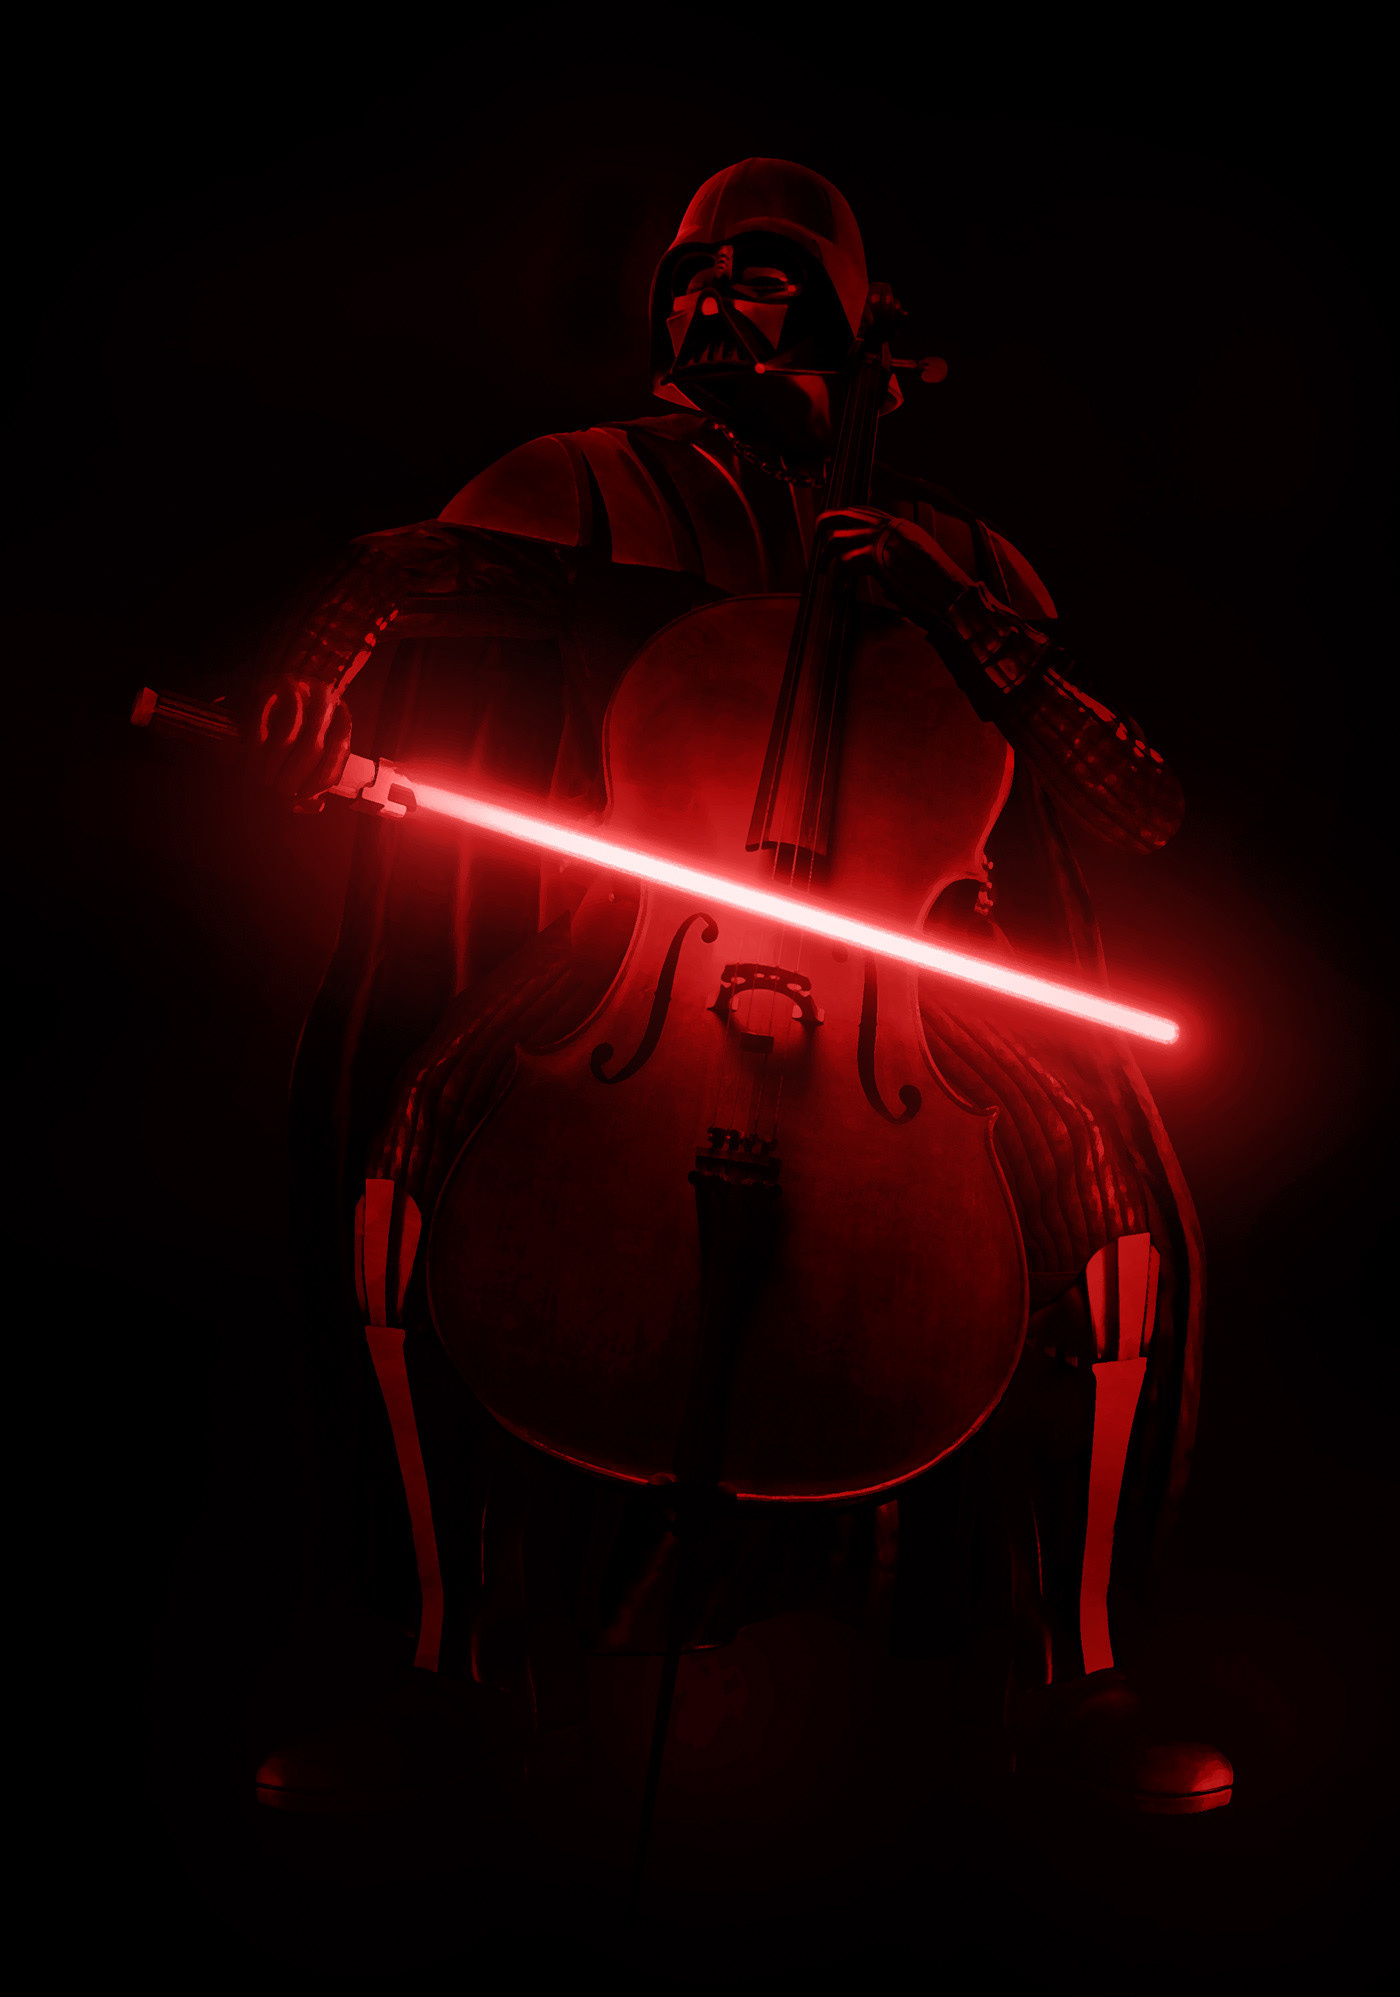 Darth Violoncellist